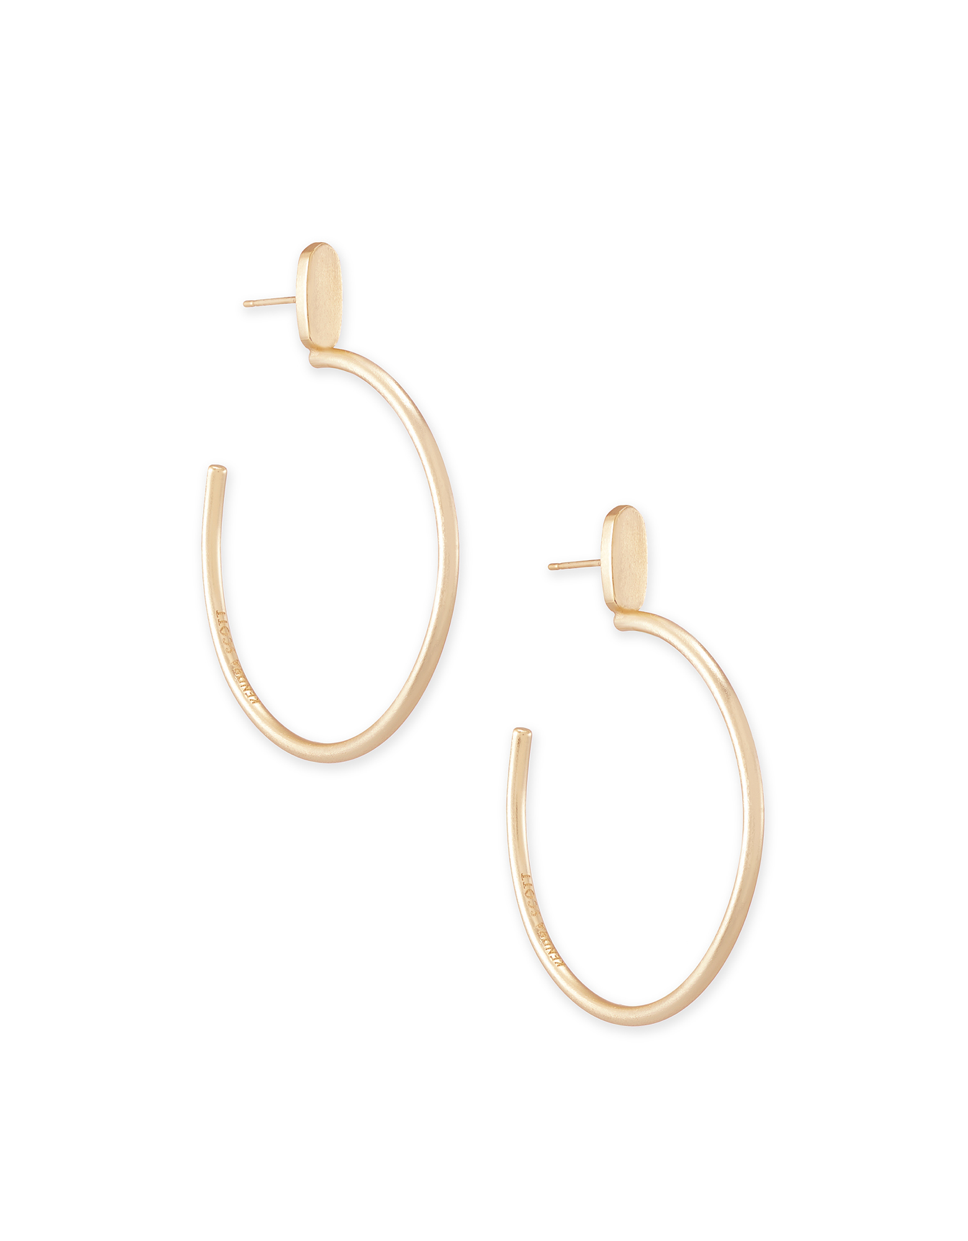 .Small Pepper Hoop Earrings In Rose Gold